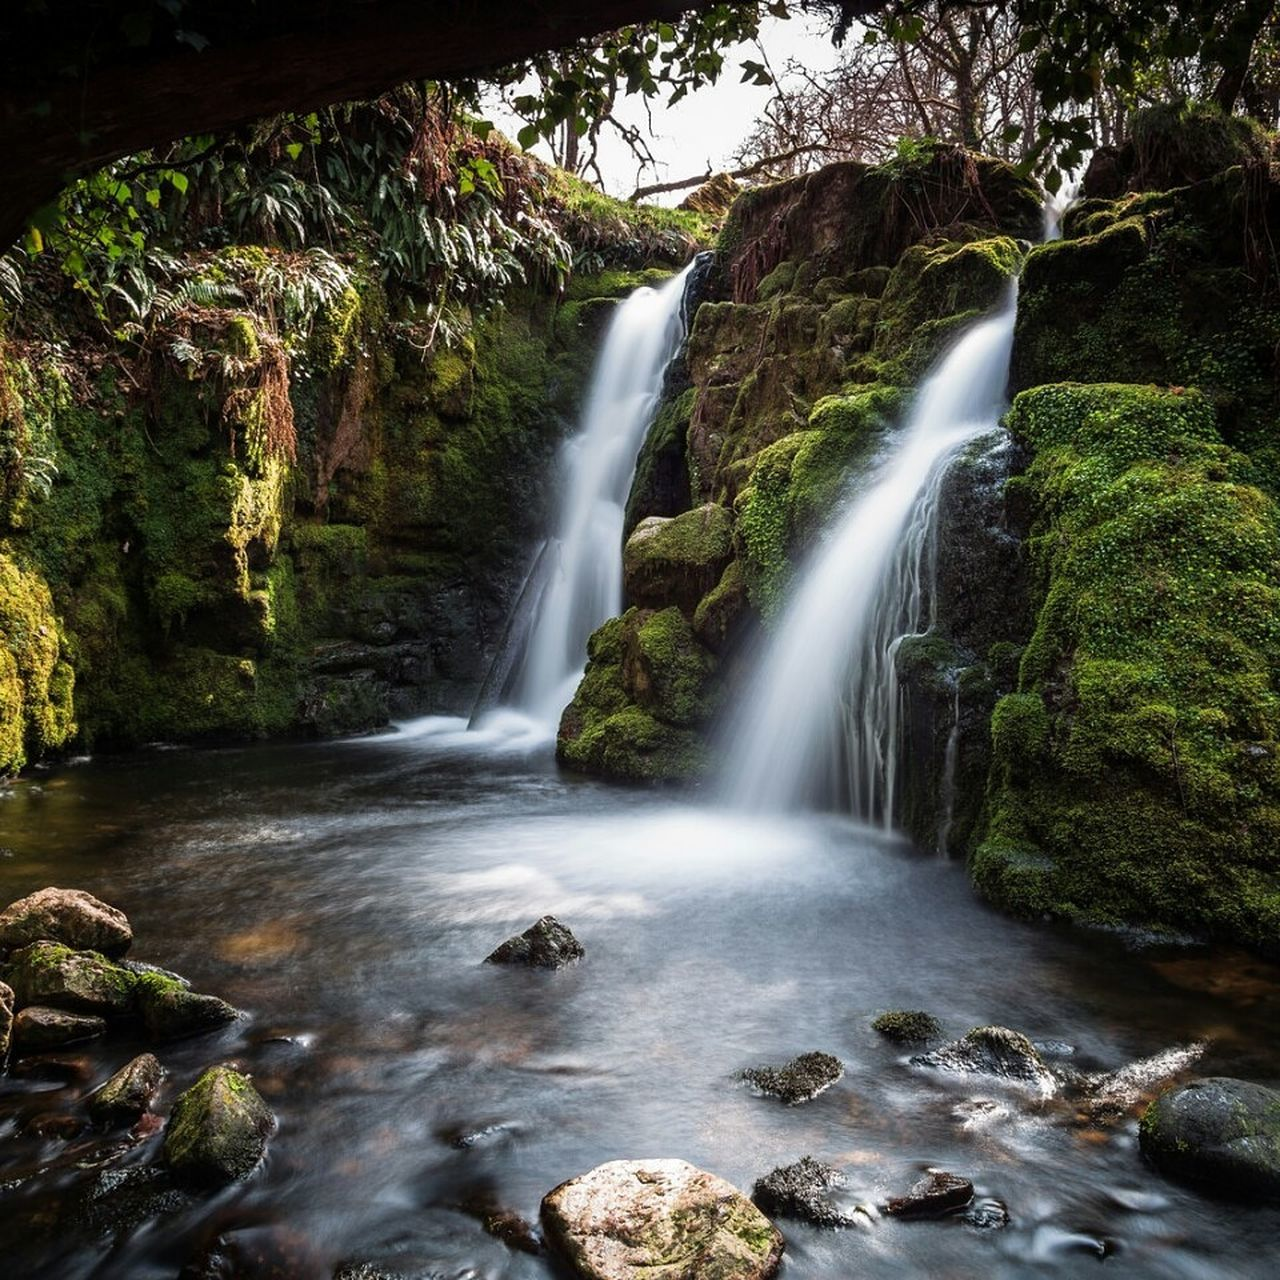 Secret falls Landscape Water Waterfalls Long Exposure Full Frame Rocks And Water Dartmoor National Park Full Frame Capturing Movement Scenics Beauty In Nature Flowing Water